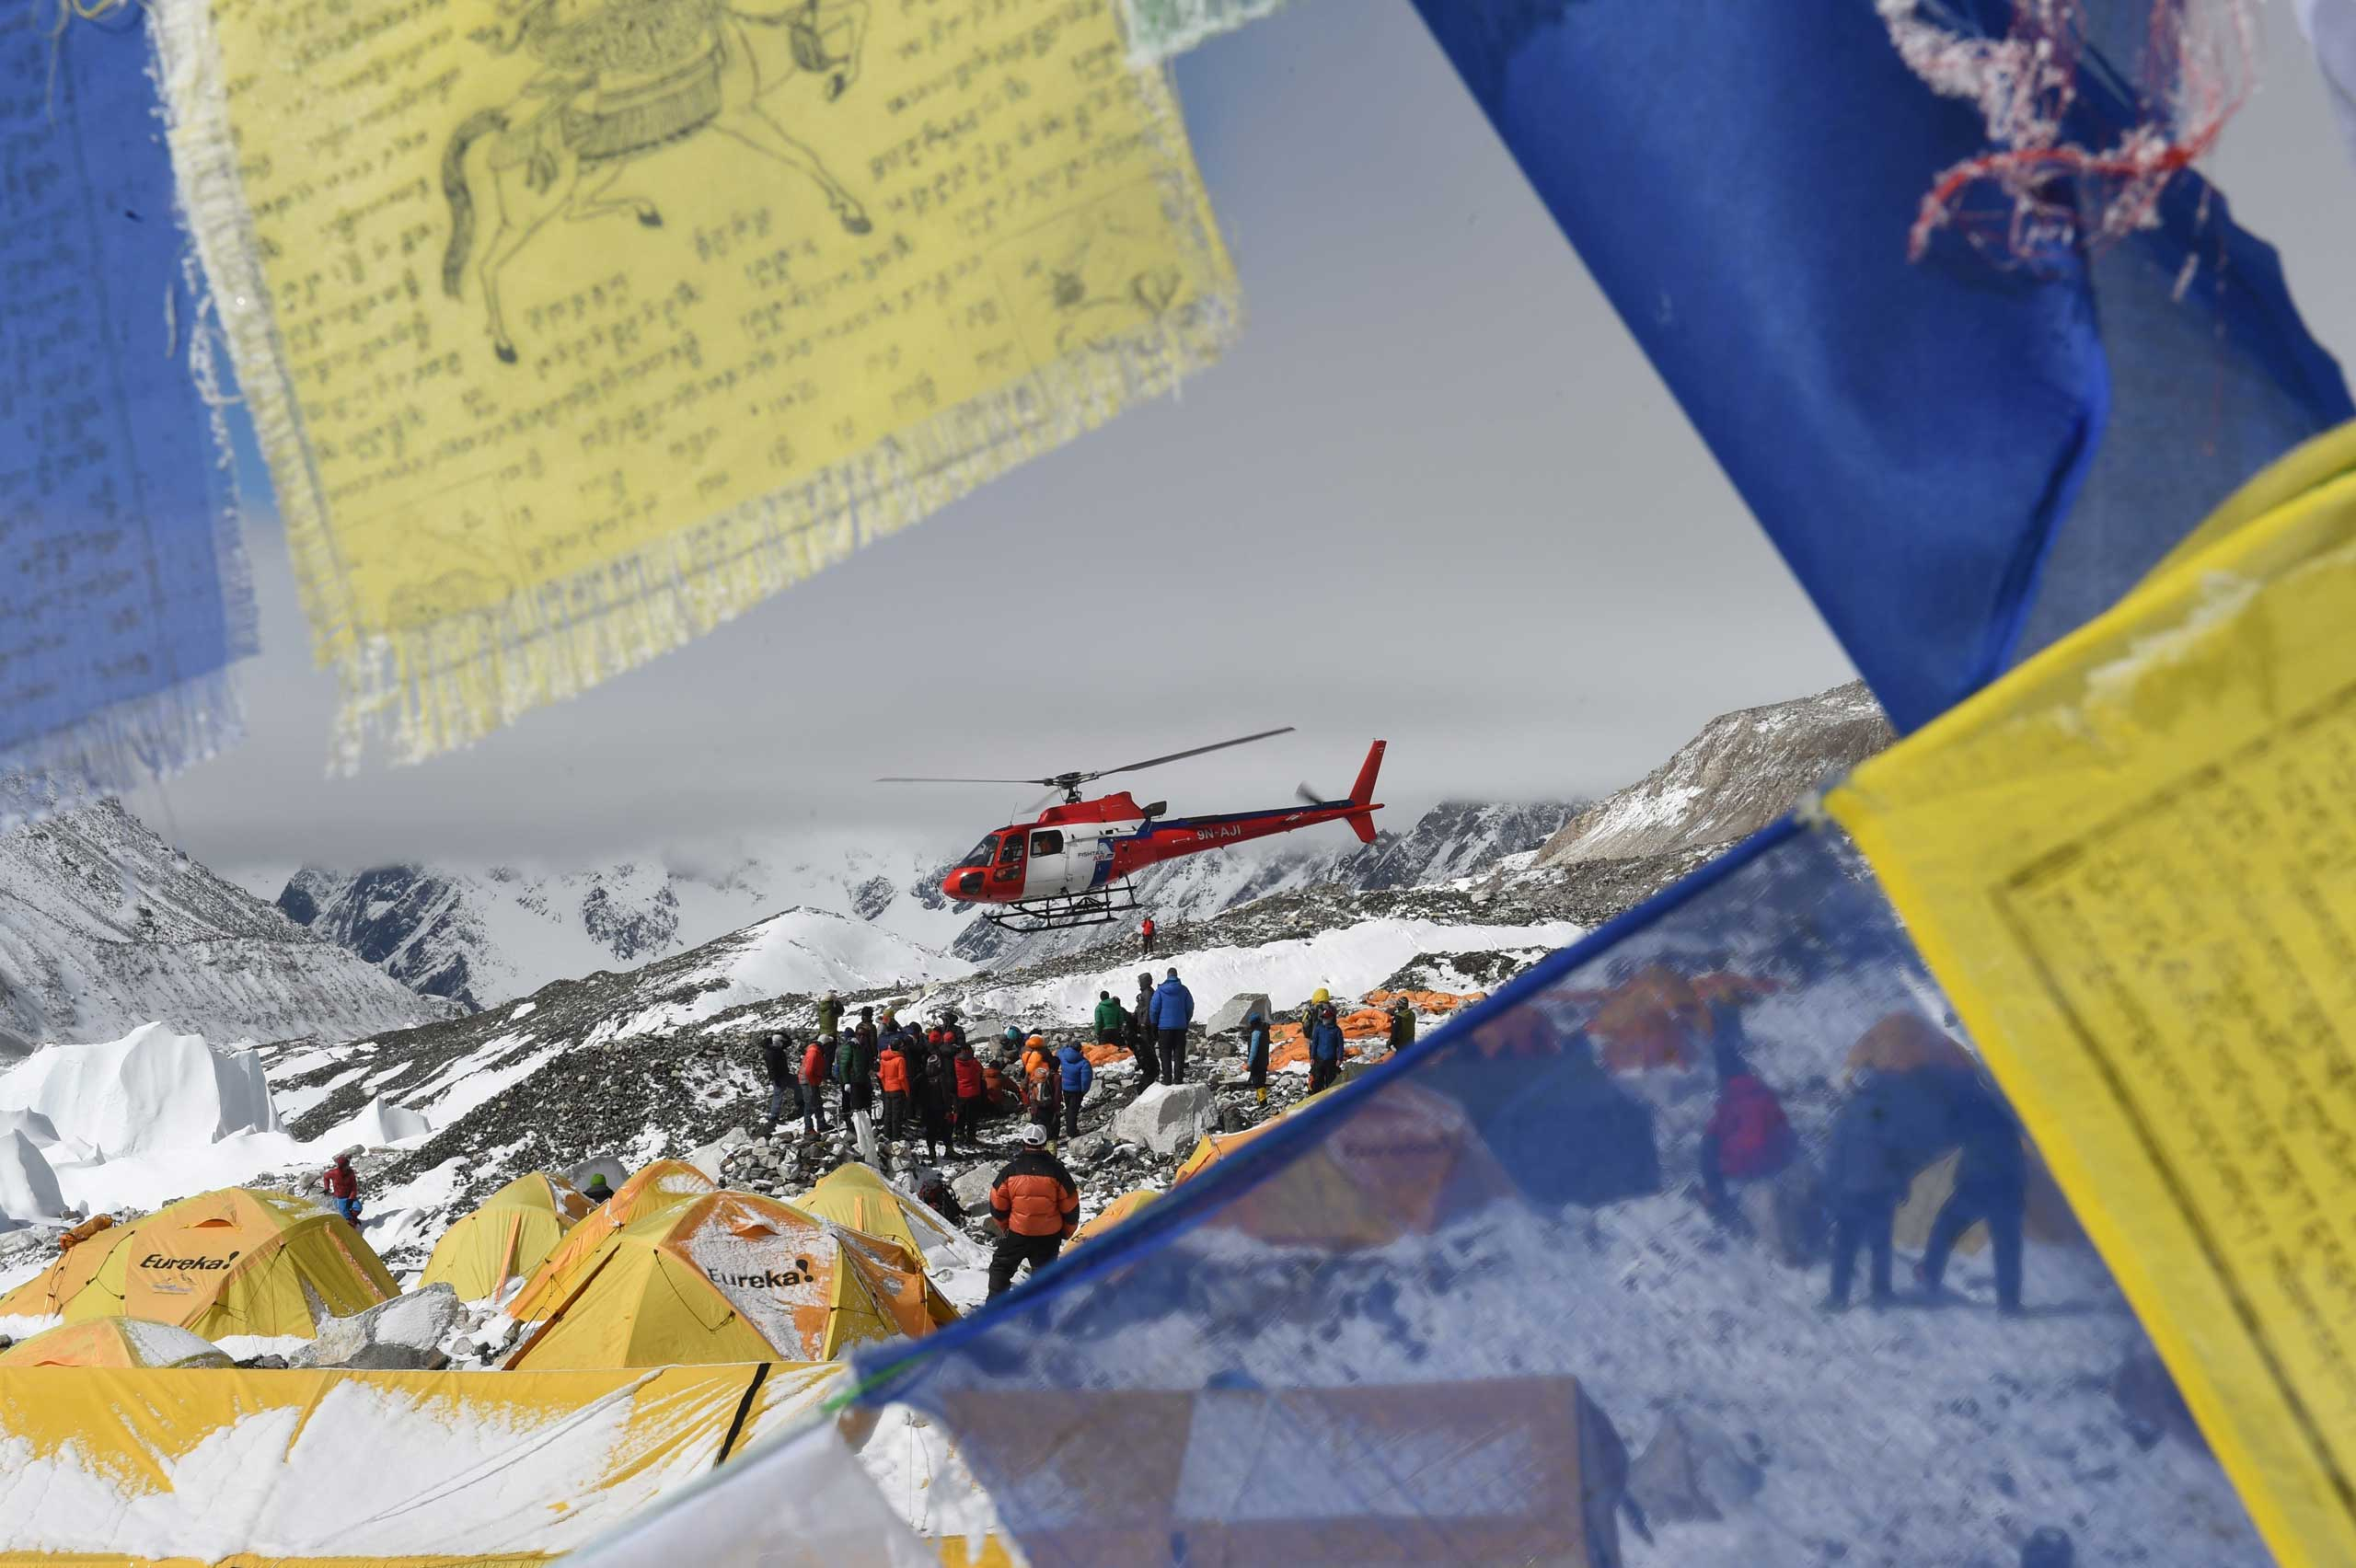 Prayer flags frame a rescue helicopter as it ferries the injured from Everest Base Camp on April 26, 2015, one day after an avalanche triggered by an earthquake outside Kathmandu, Nepal.